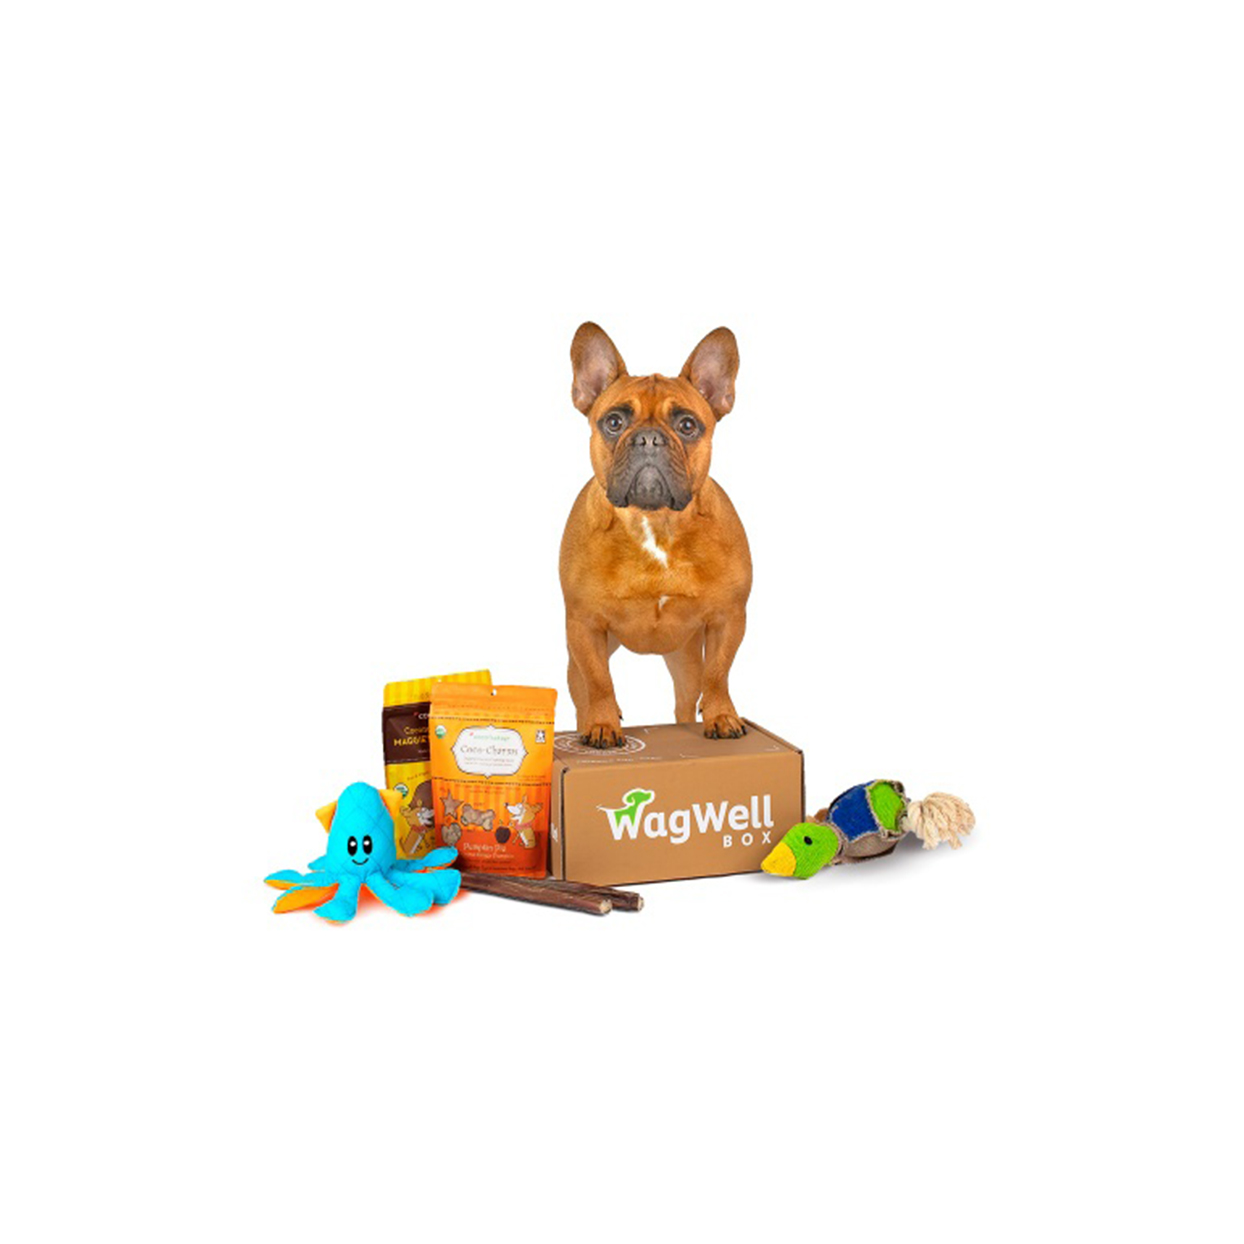 wag well subscription box